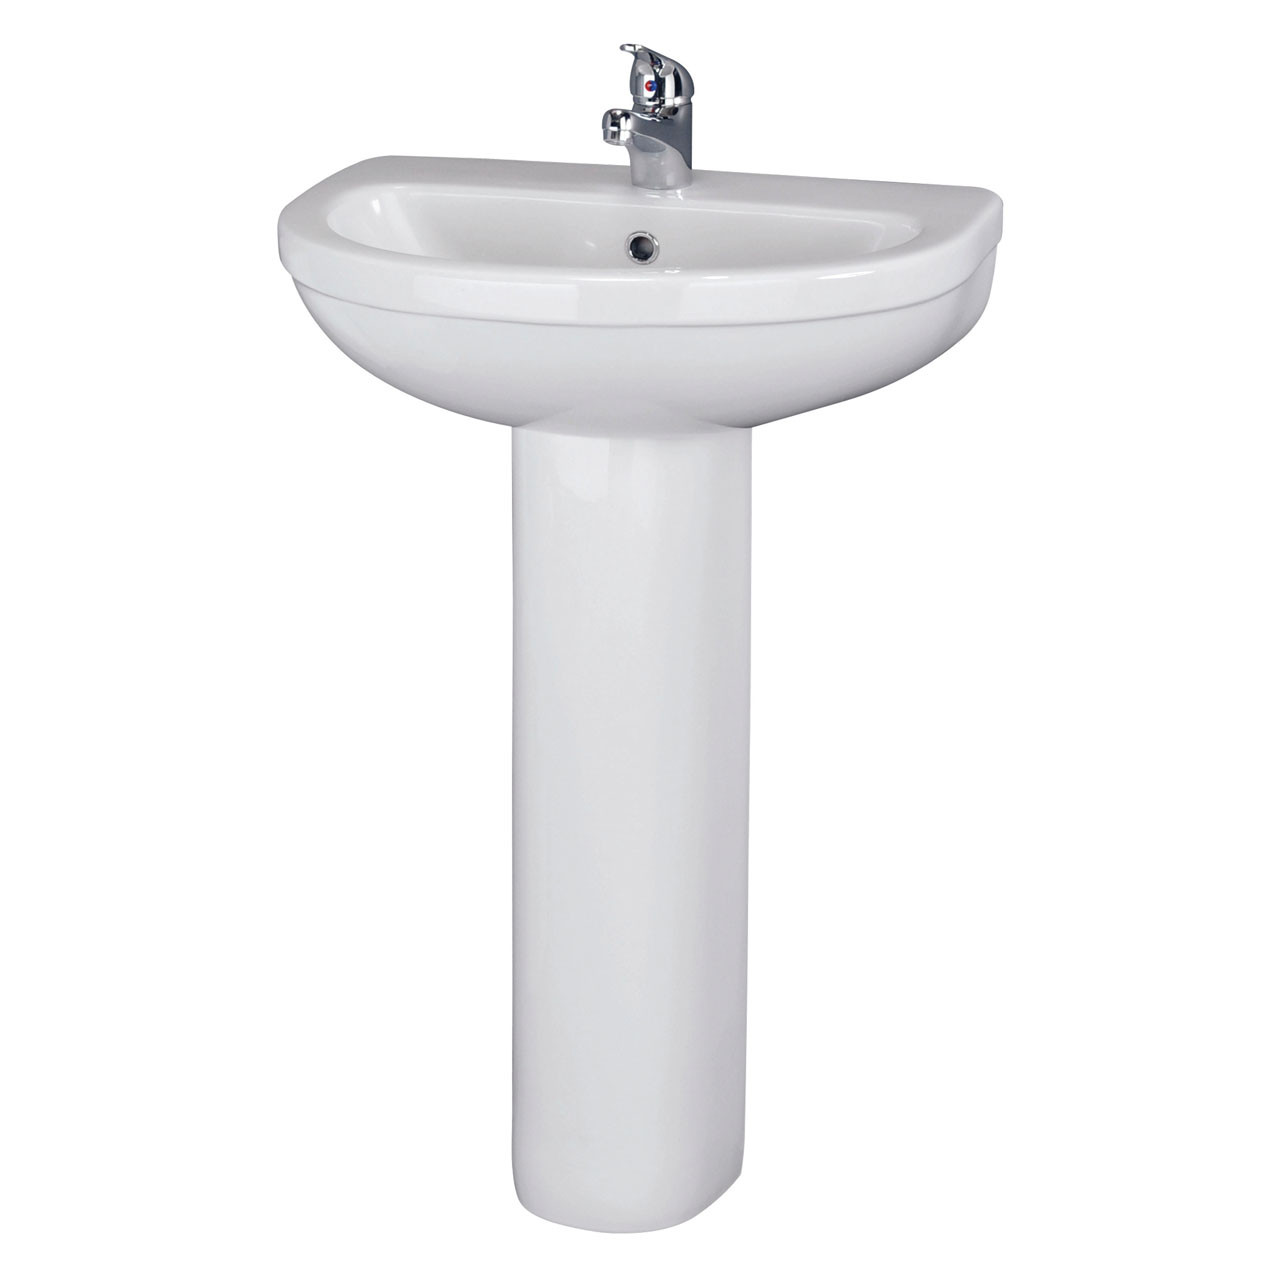 Premier Ivo 550mm Basin with 1 Tap Hole and Full Pedestal - CIV002